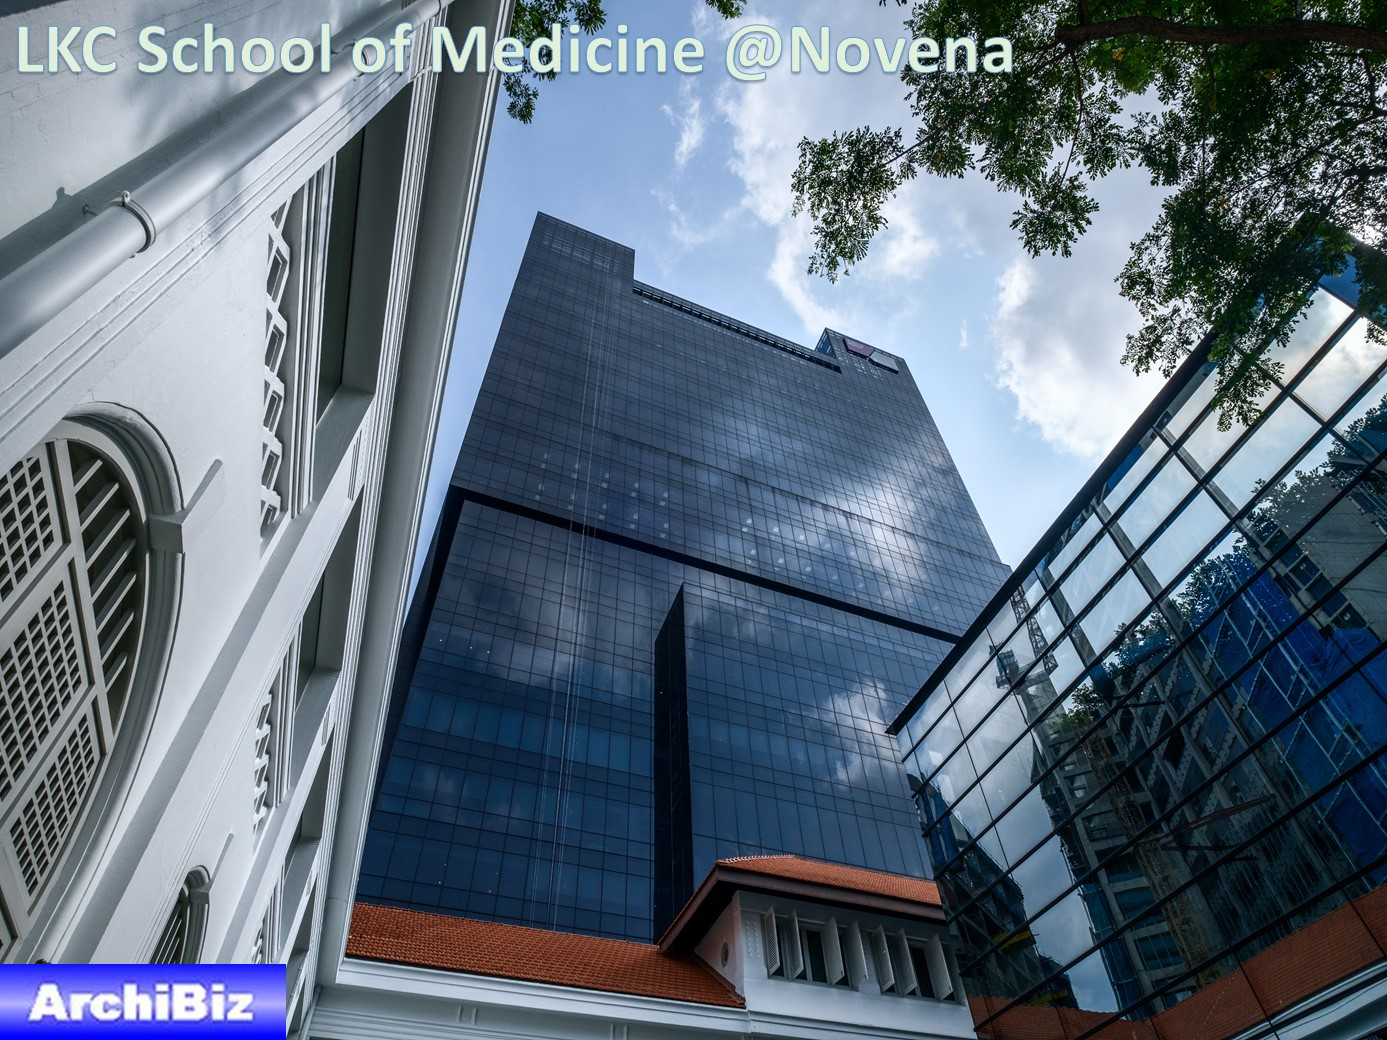 LKC School of Medicine @Novena (7)